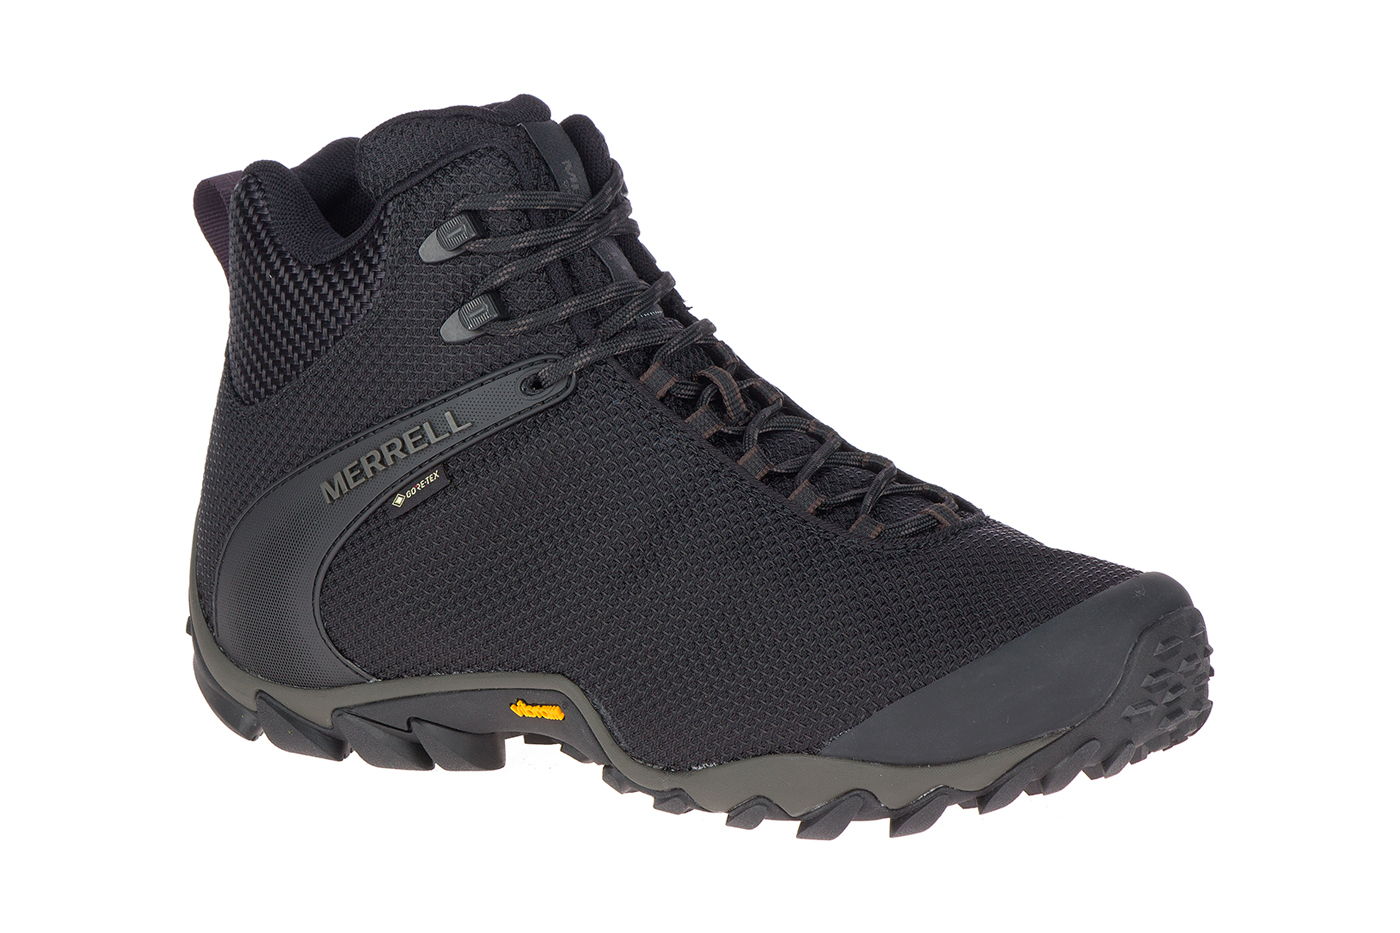 vibram merrell boots limited